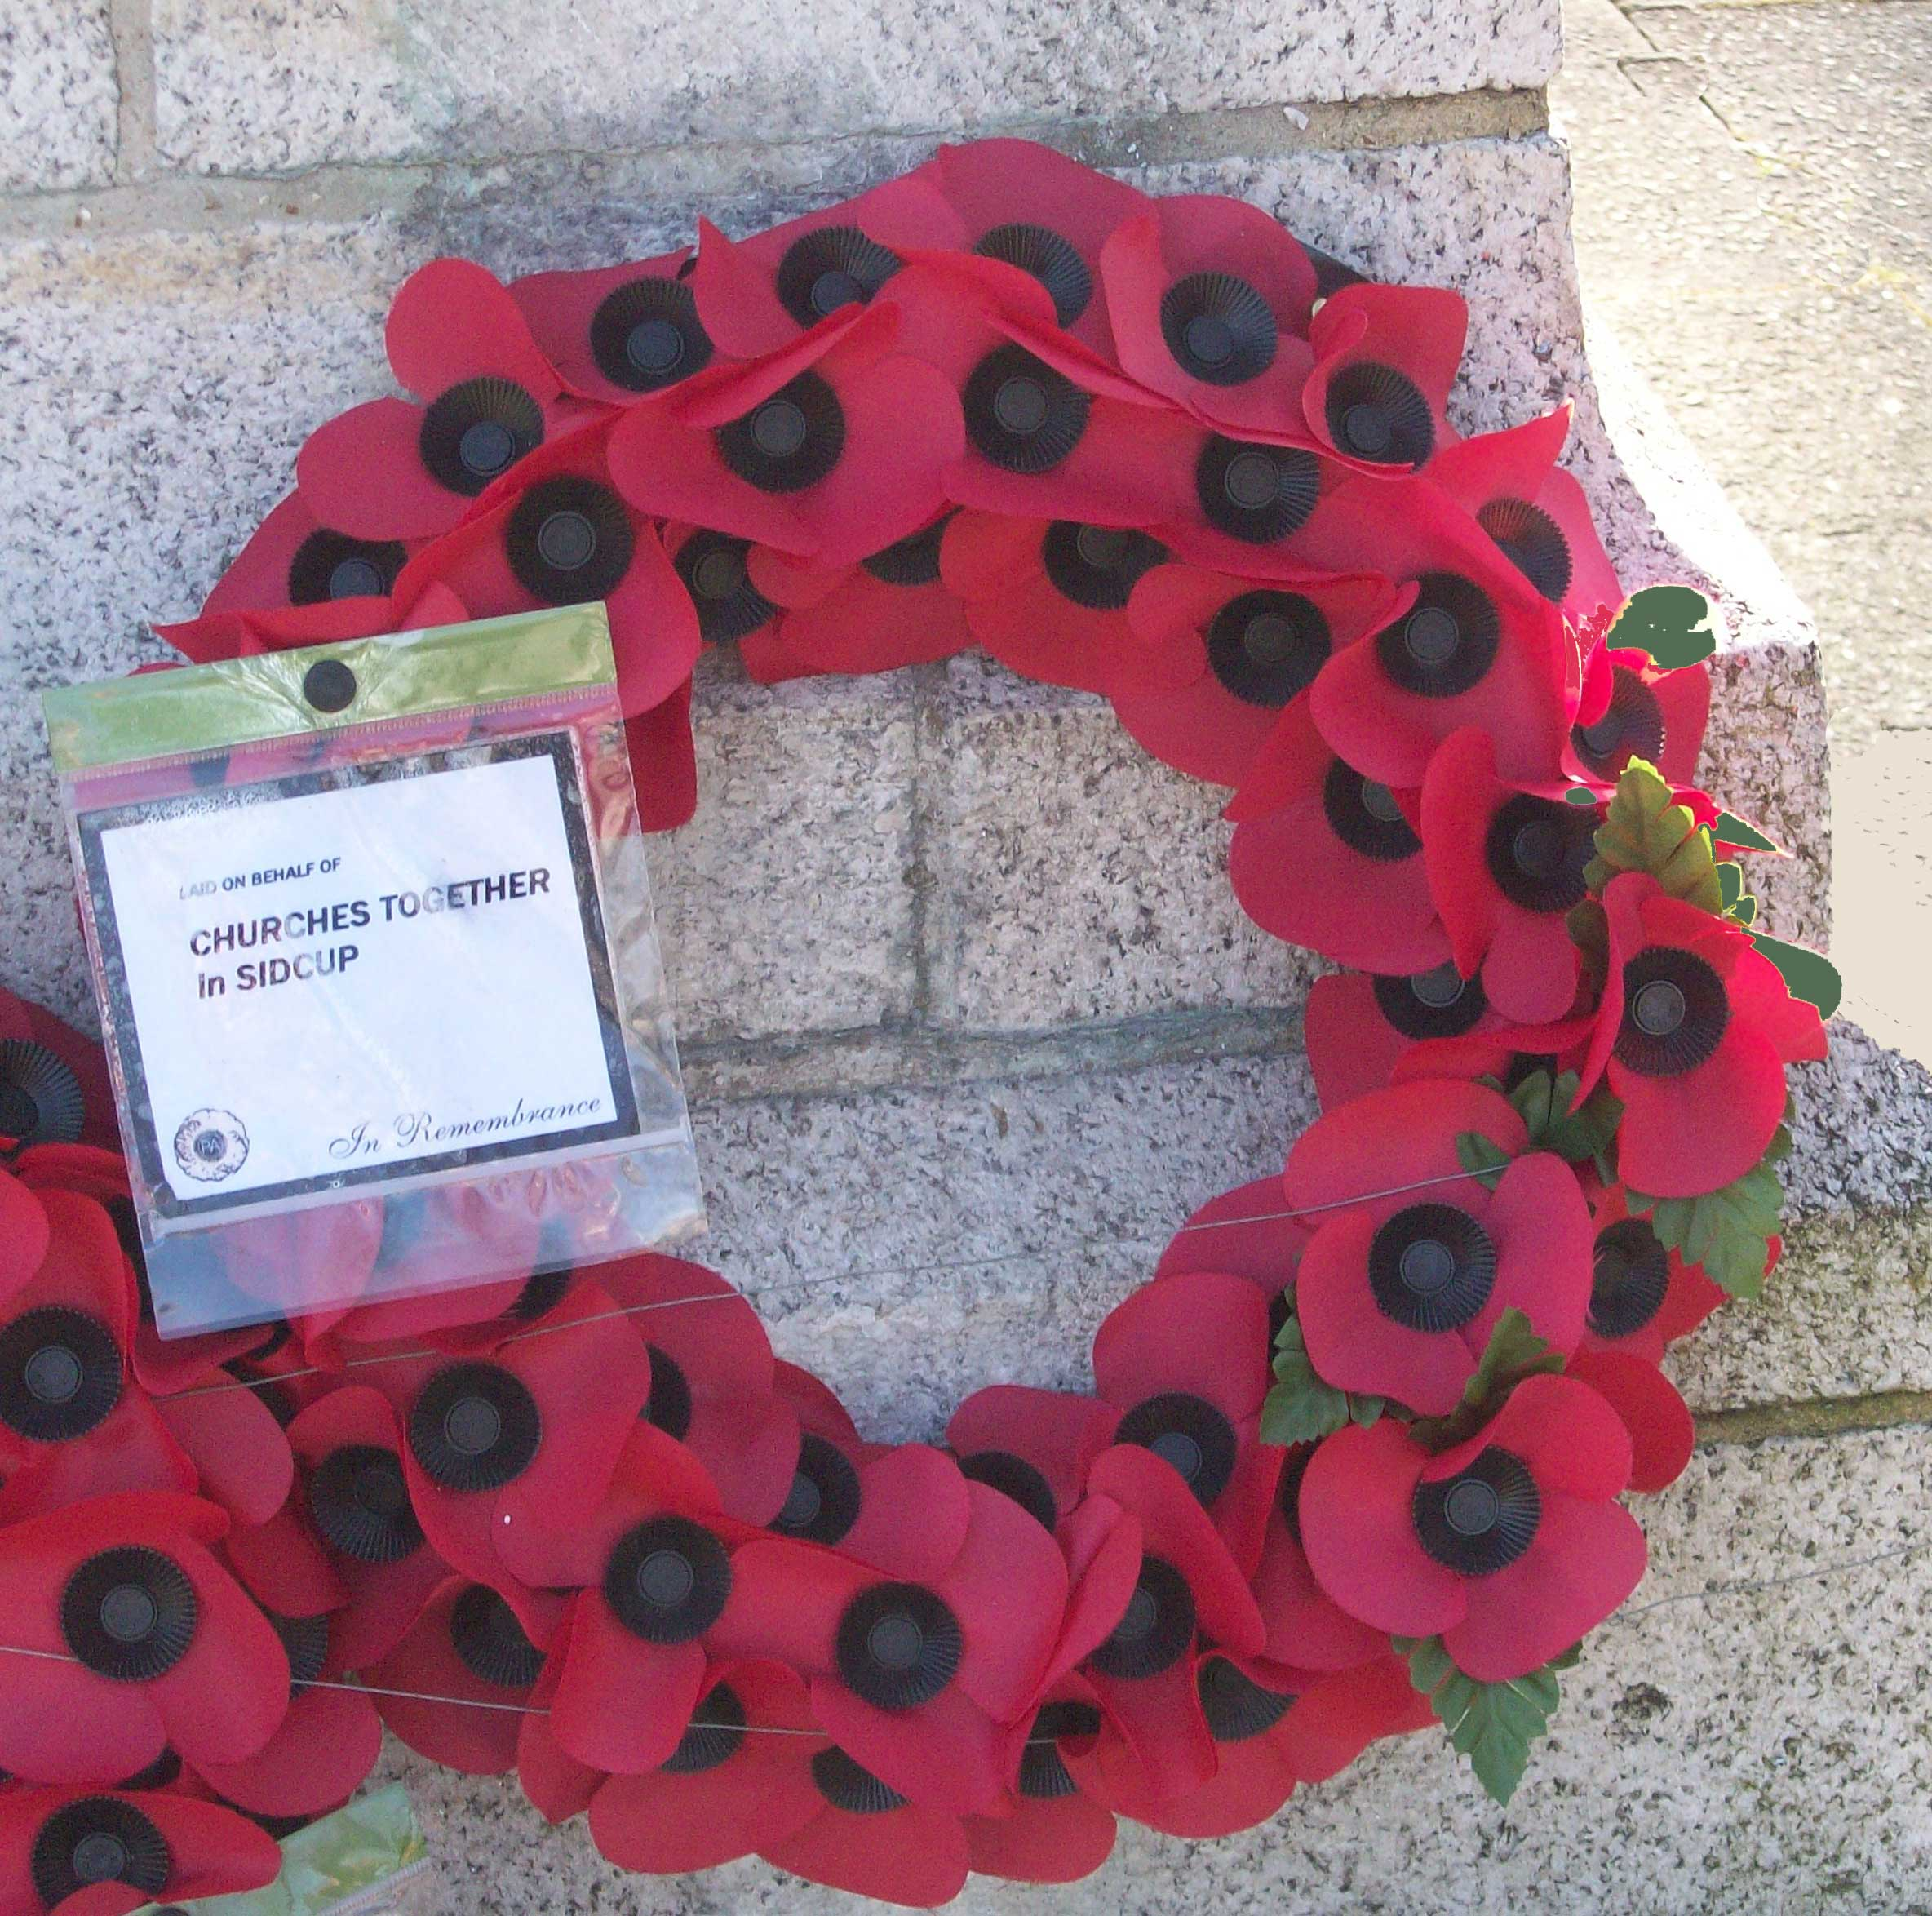 Remembrance Ceremony at The  Green, Sidcup Place on Sunday 8th November